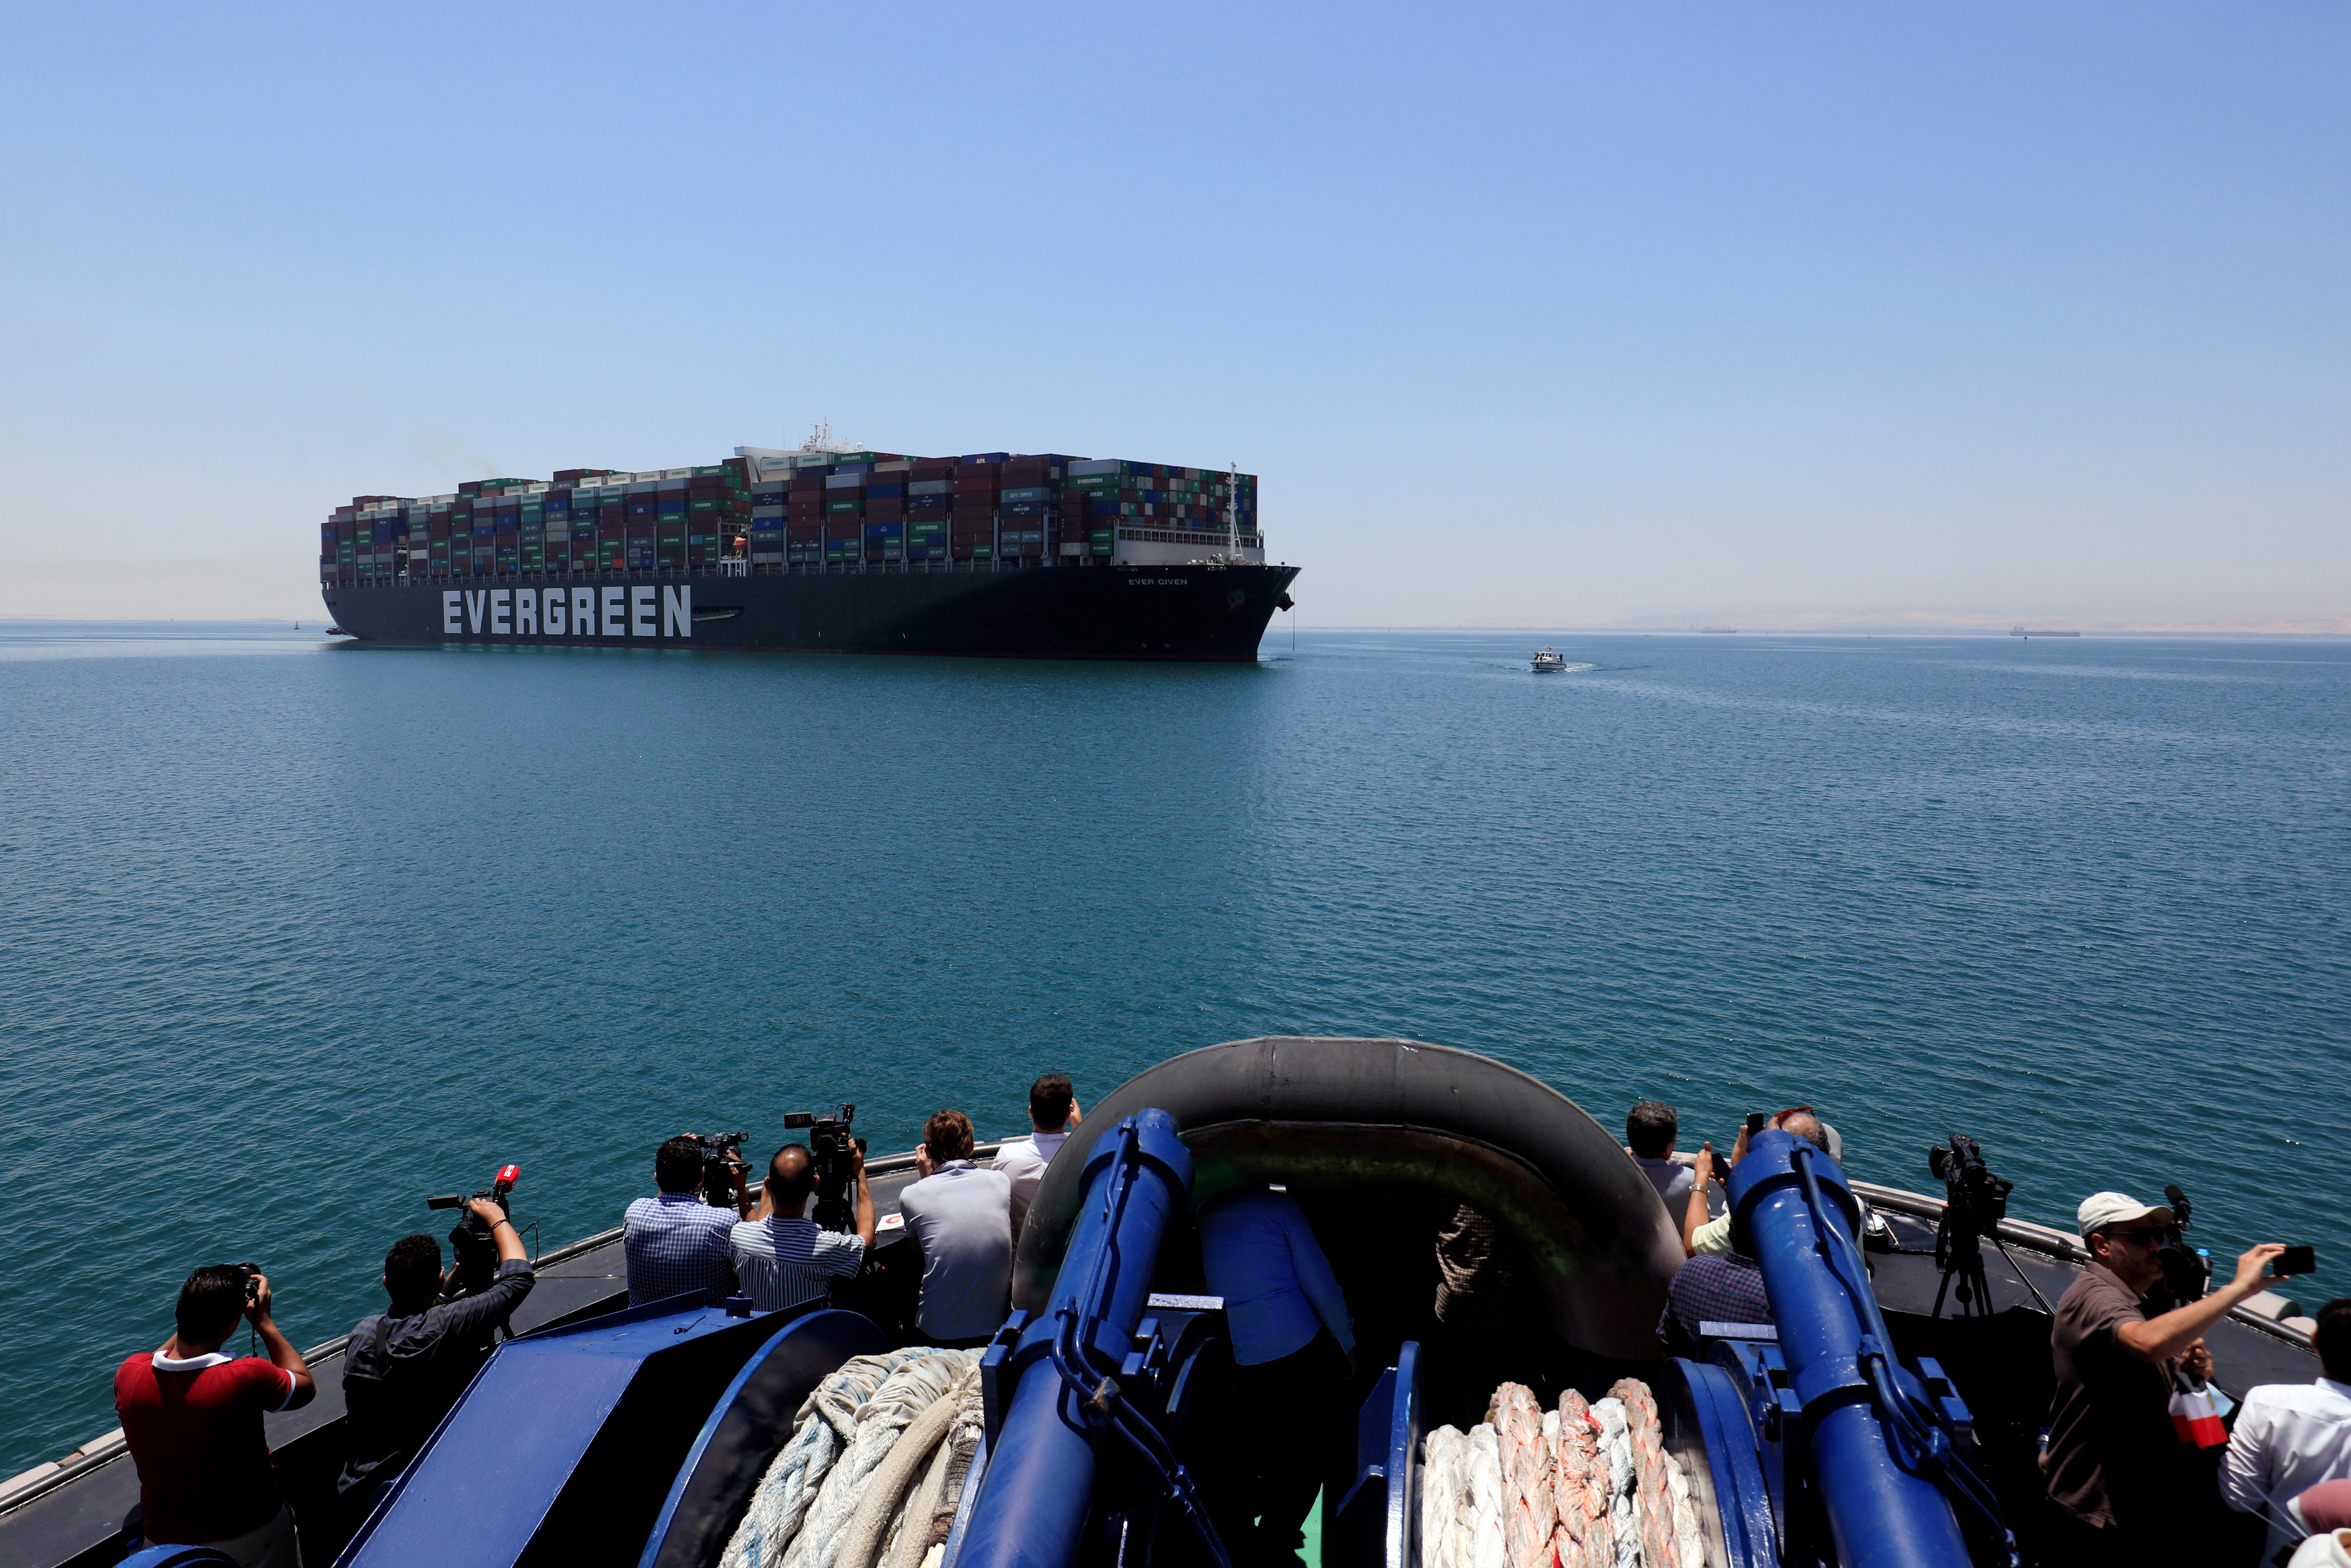 Ever Given, one of the world's largest container ships, is seen at the Suez Canal after the canal authority reached a settlement with the vessel's owner and insurers, in Egypt's Great Bitter Lake in Ismailia, Egypt, July 7, 2021. REUTERS/Amr Abdallah Dalsh/File Photo